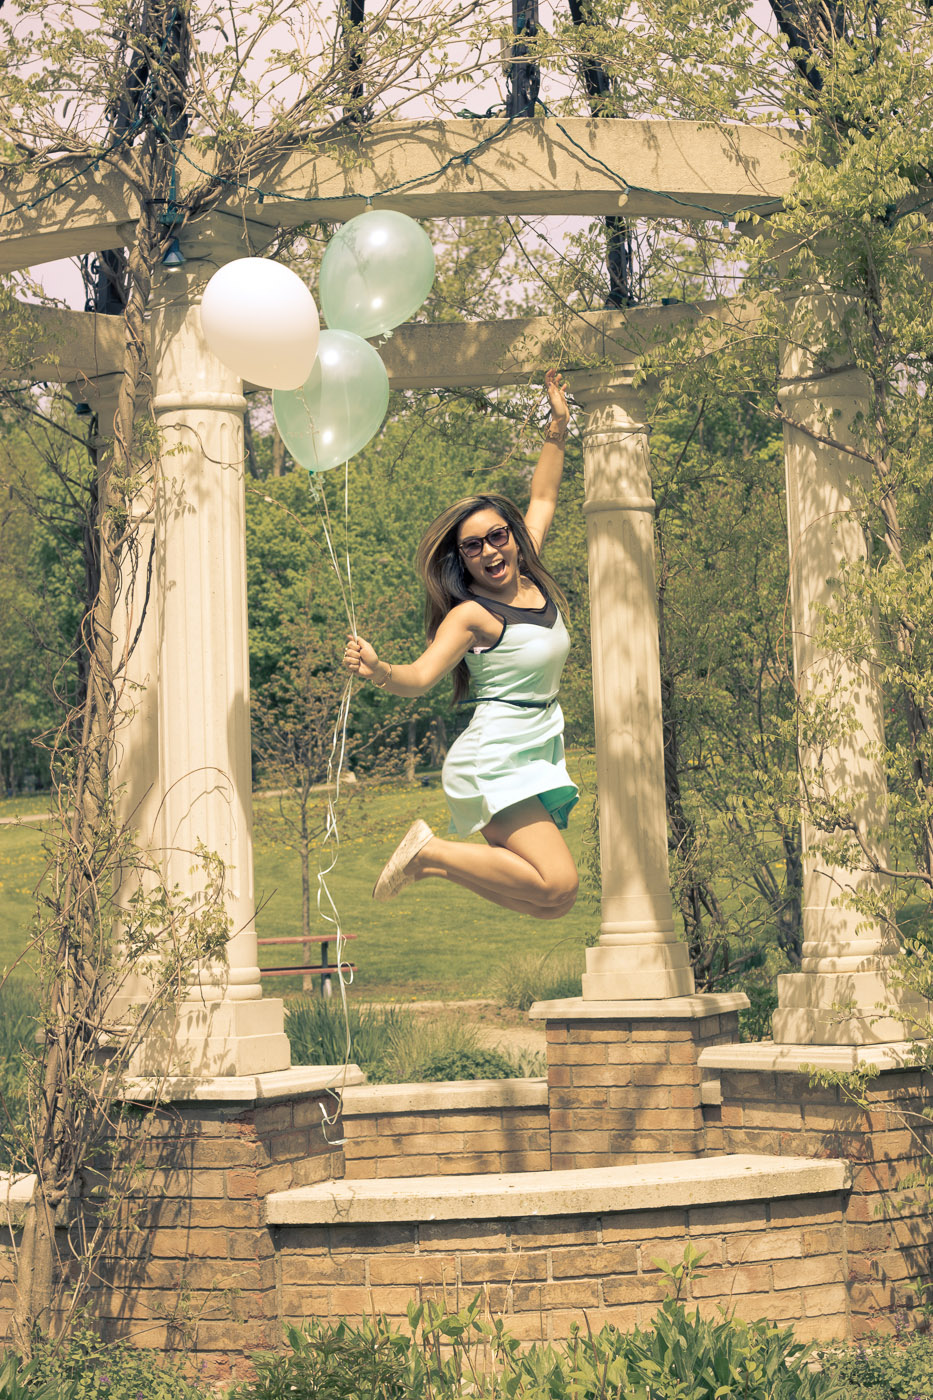 Girl holding balloons jumping with joy in an outdoor vine-covered gazebo.